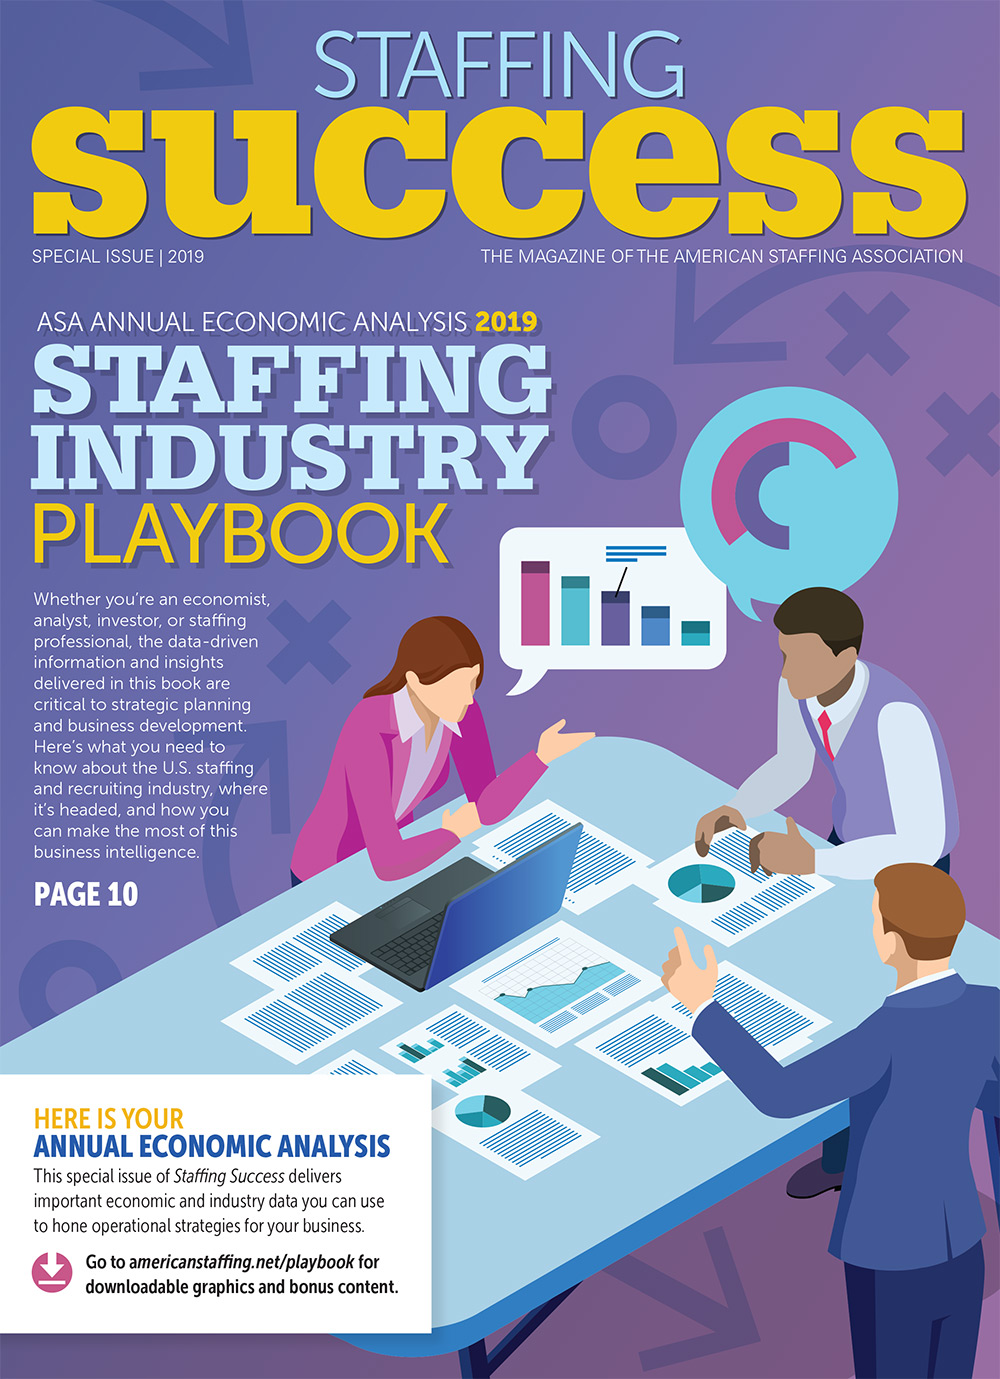 ASA Staffing Industry Playbook 2019